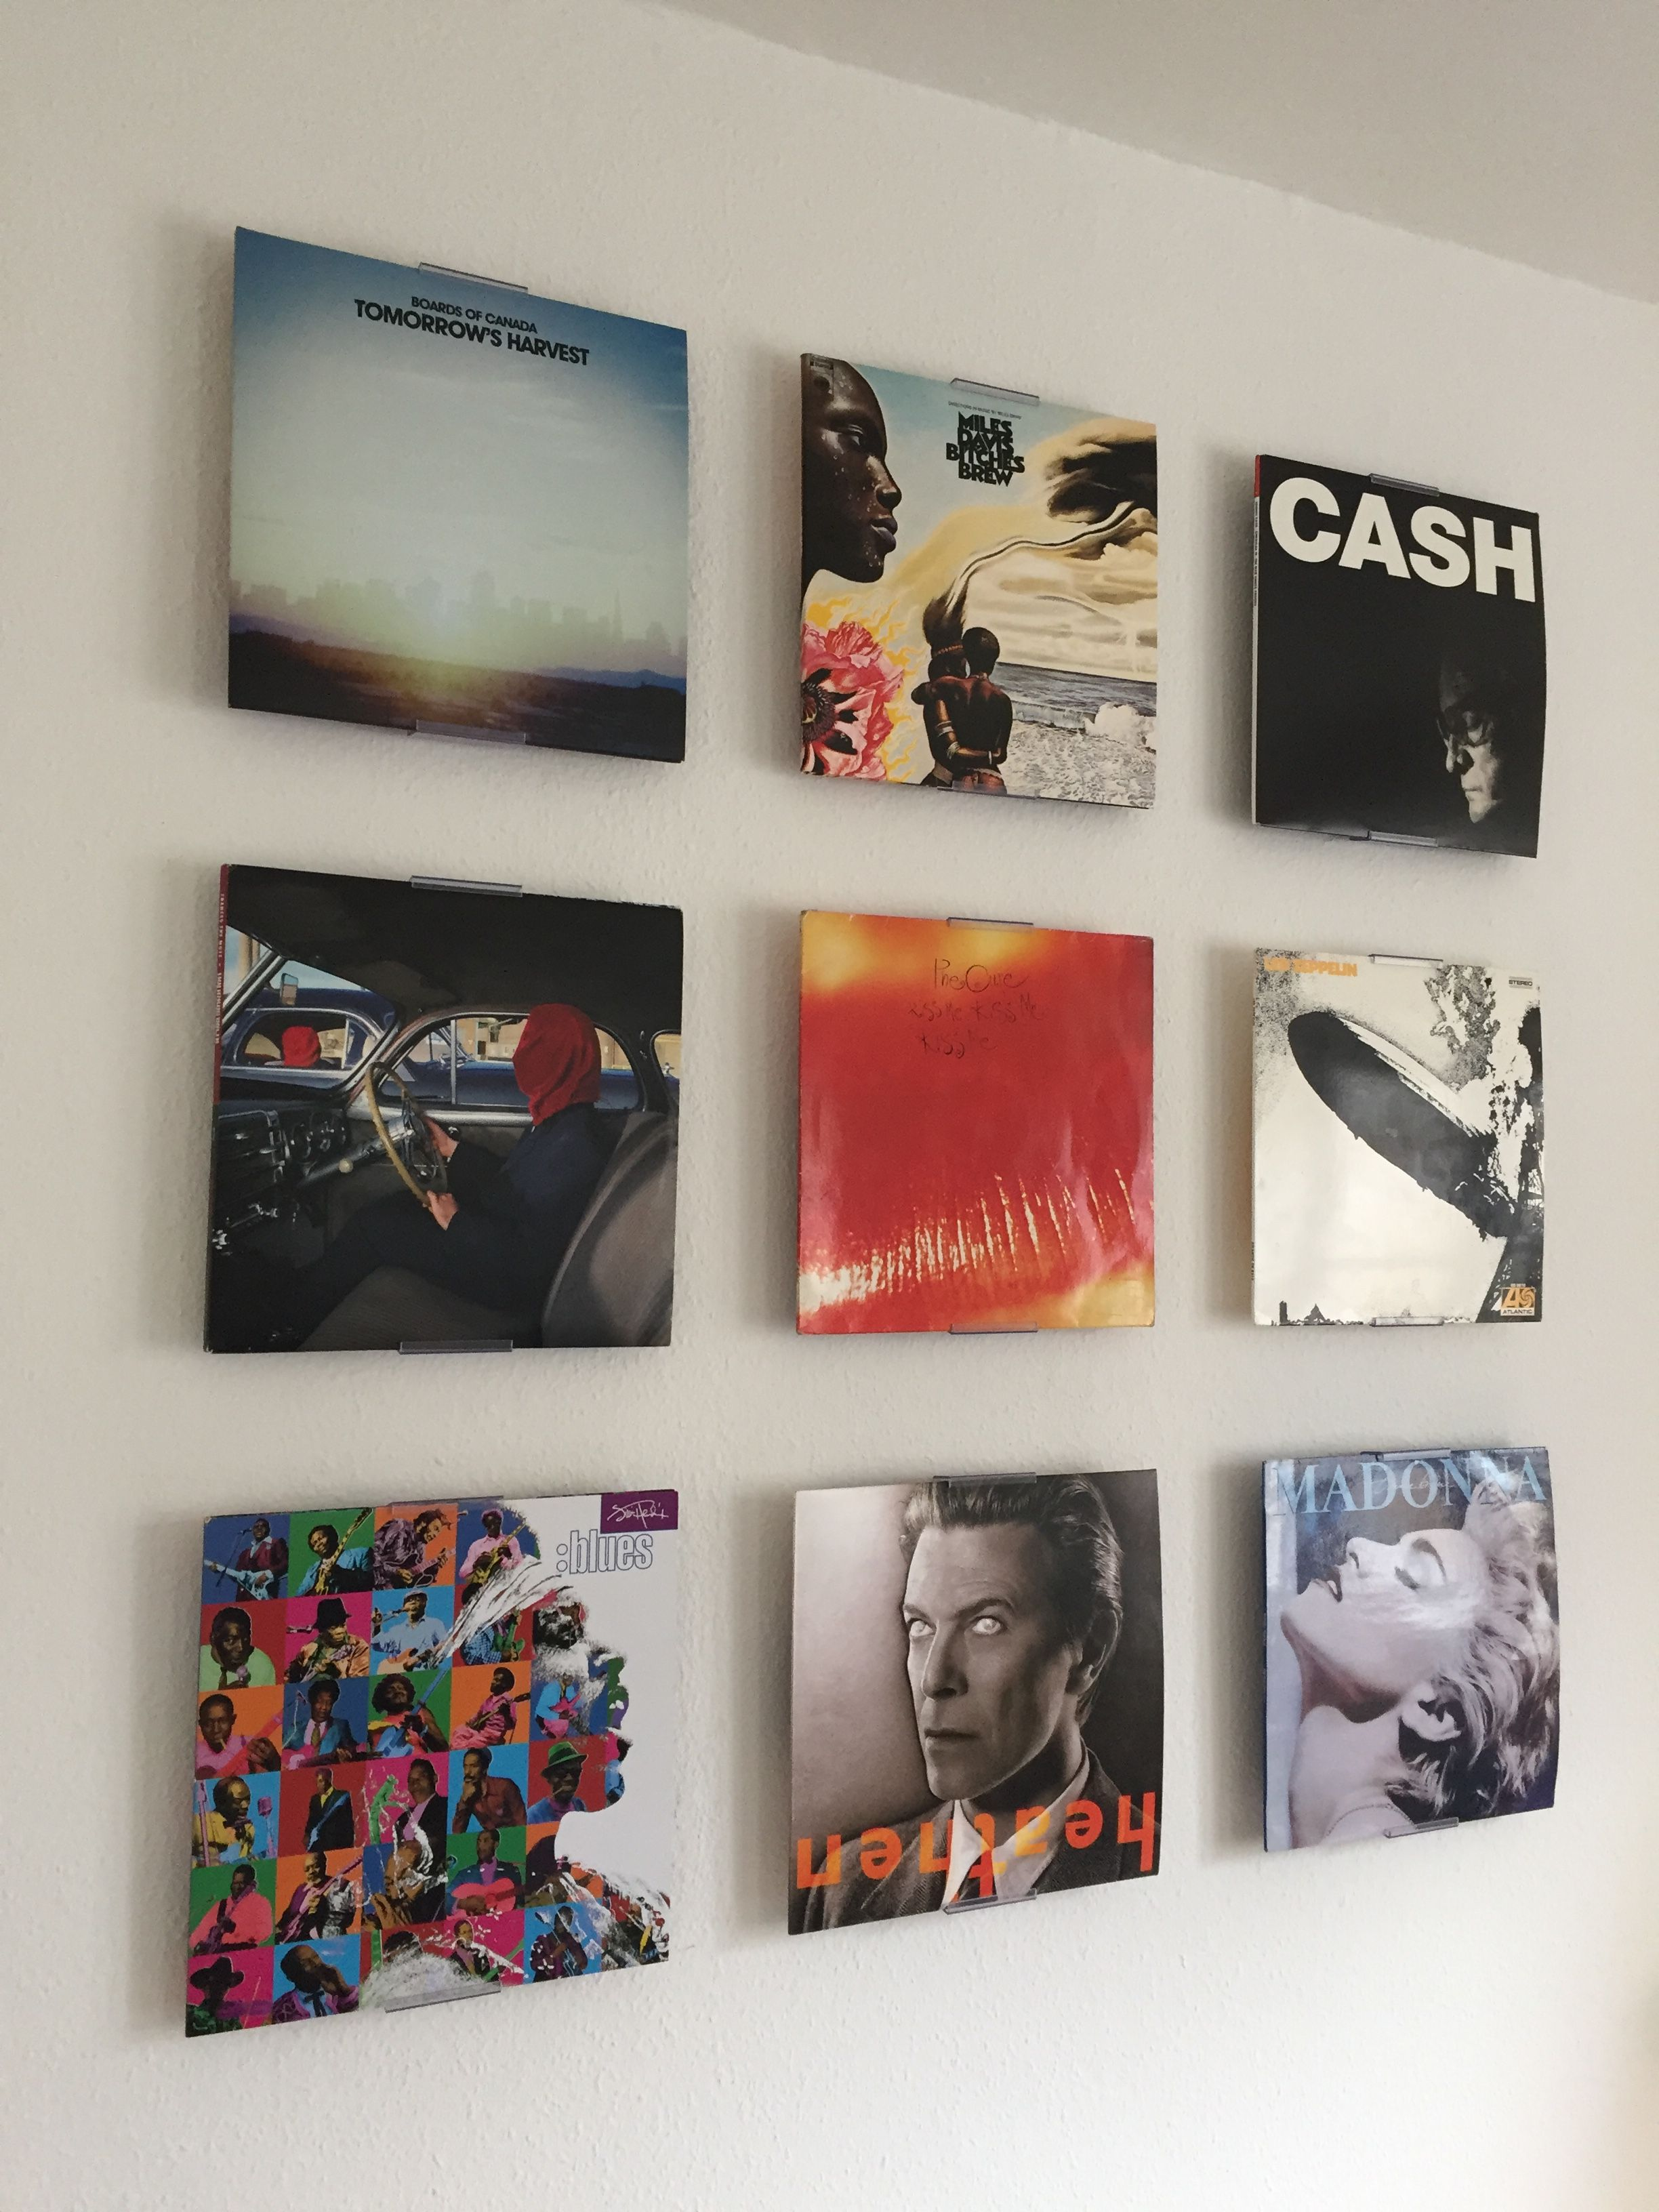 how to store vinyl records on wall